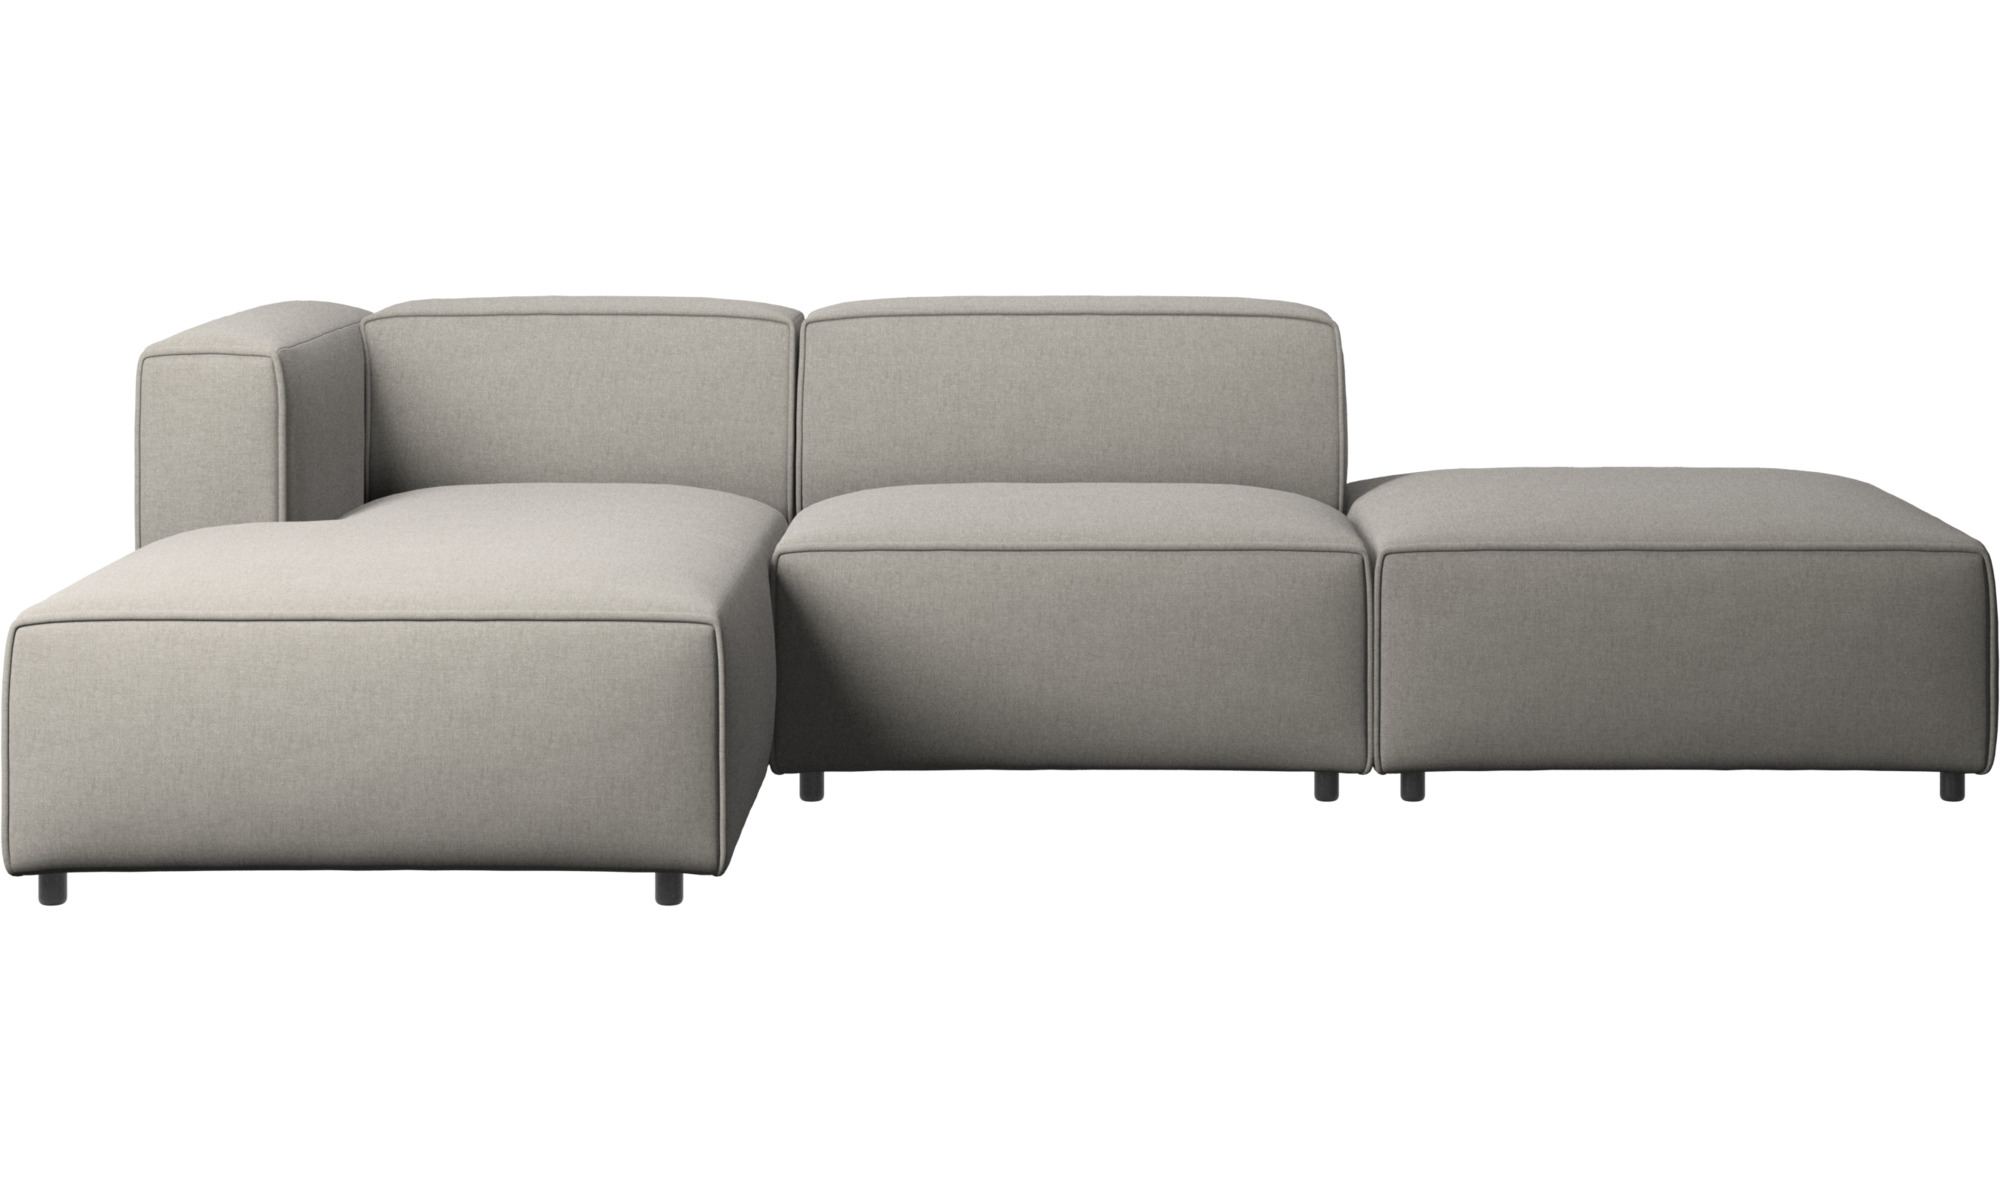 Modular sofas - Carmo sofa with lounging and resting unit - Grey - Fabric